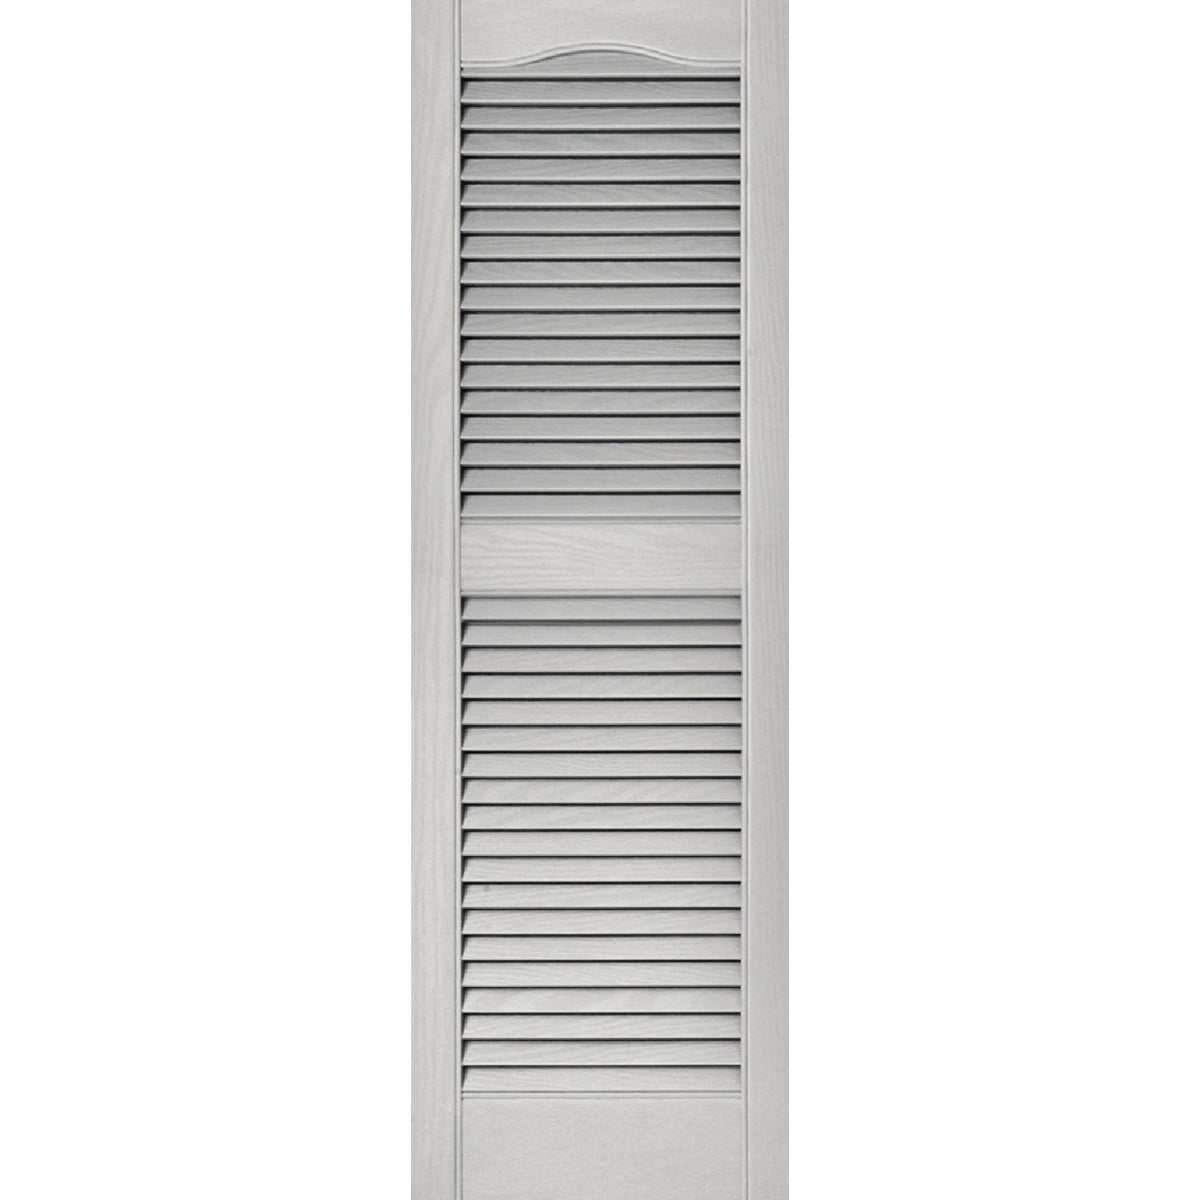 15X48 PBL LOUVER SHUTTER - 020140048030 by The Tapco Group